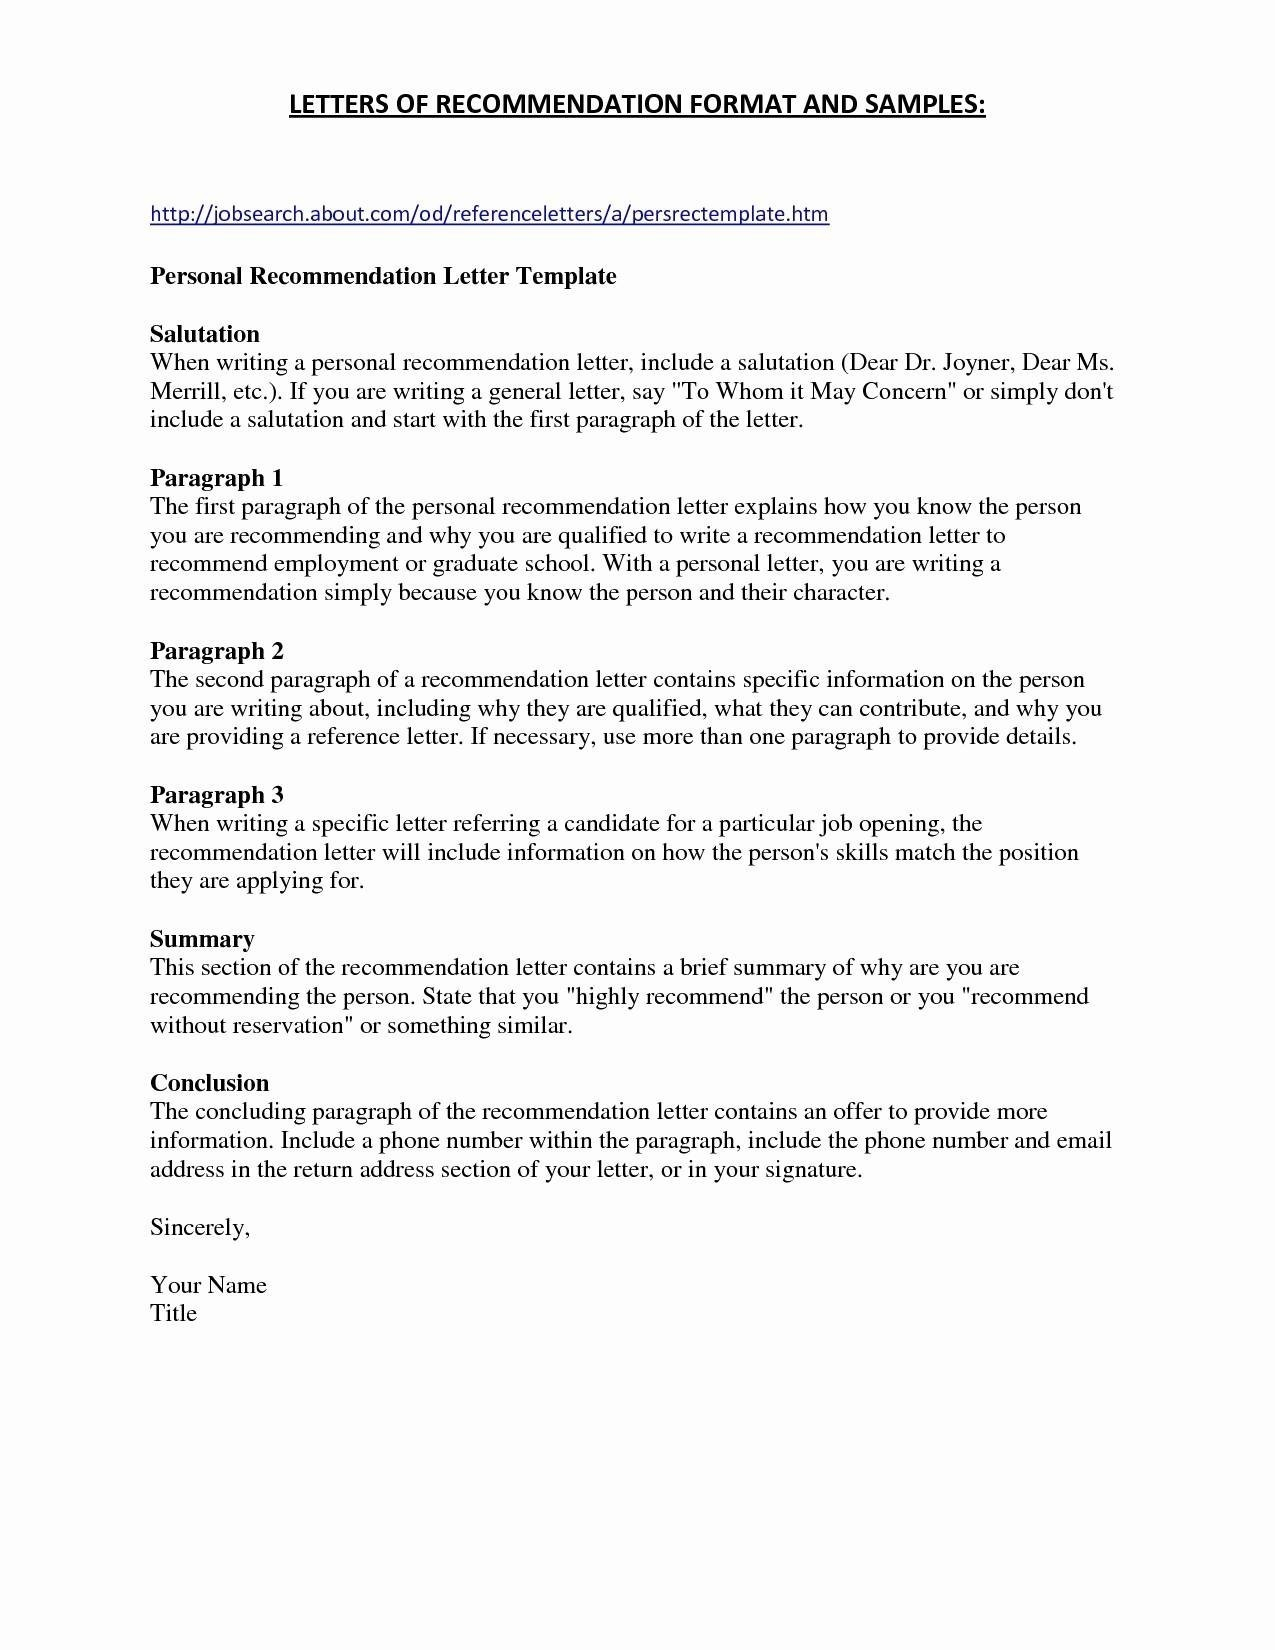 hoa complaint letter template Collection-Example plaint Letter To Neighbour Valid Neighbour Plaint Letter Template Gallery 16-i